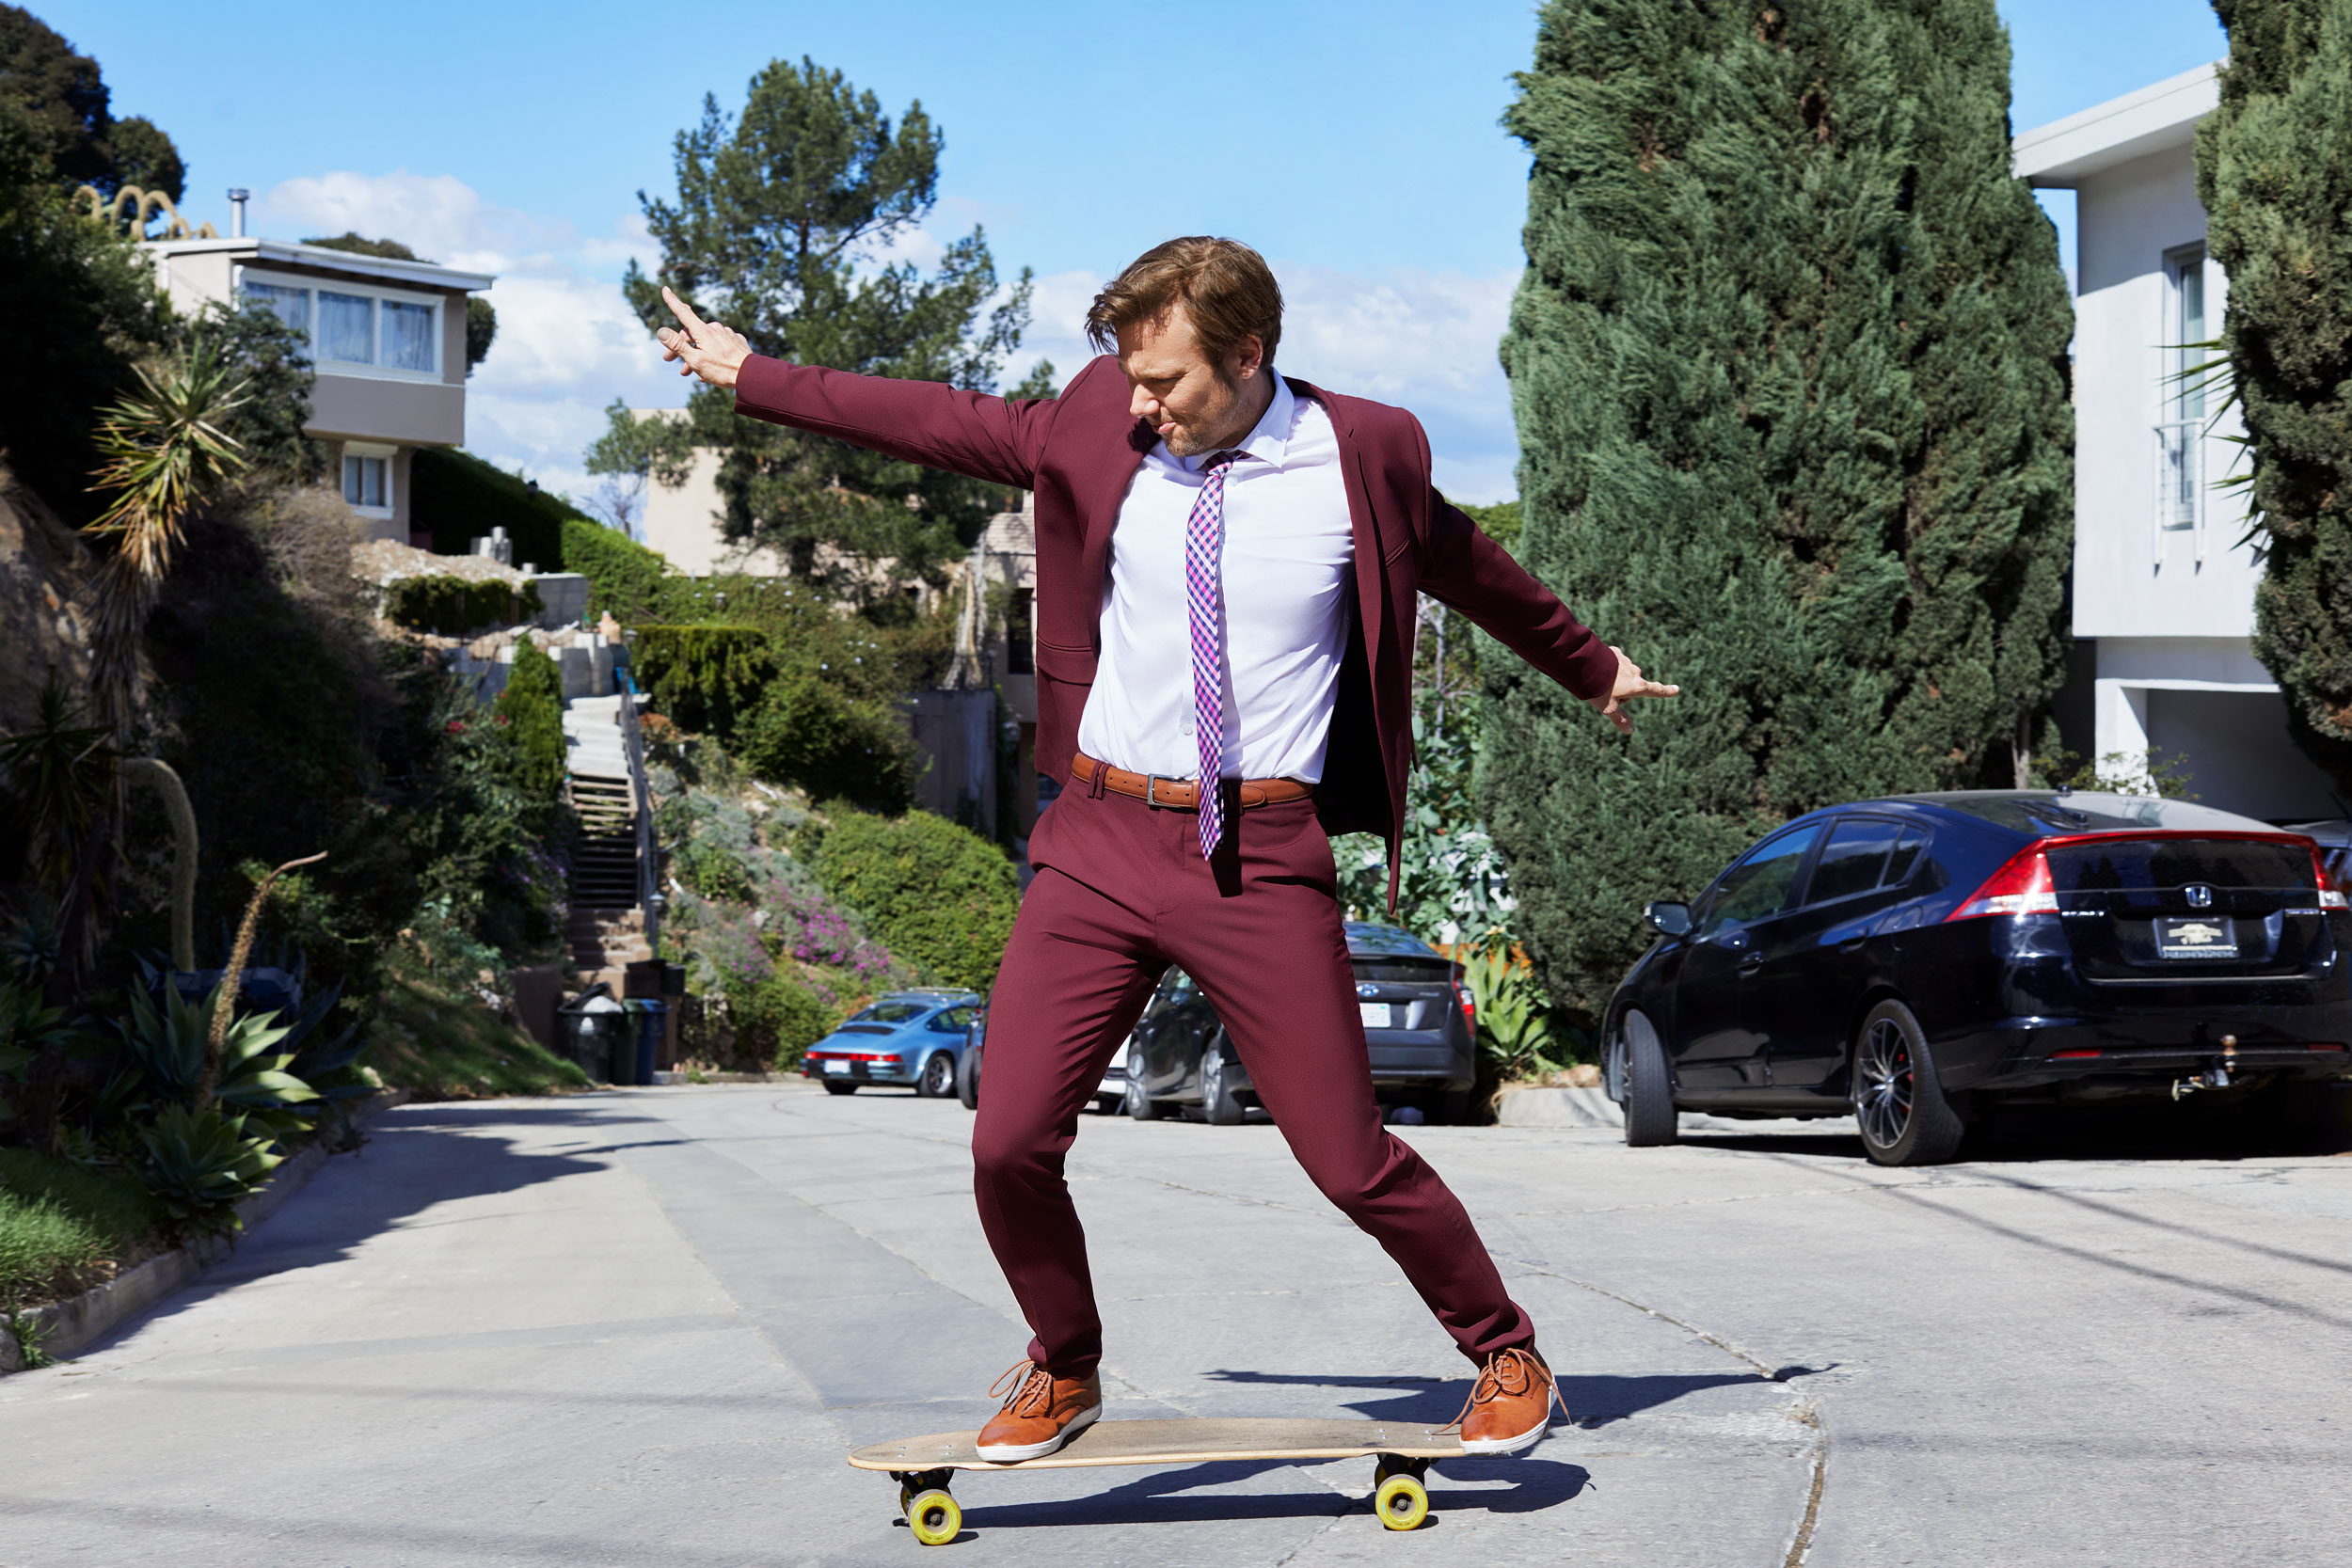 Celebrity and actor Jimmi Simpson on a skateboard. Kim Genevieve Los Angeles Portrait Photographer